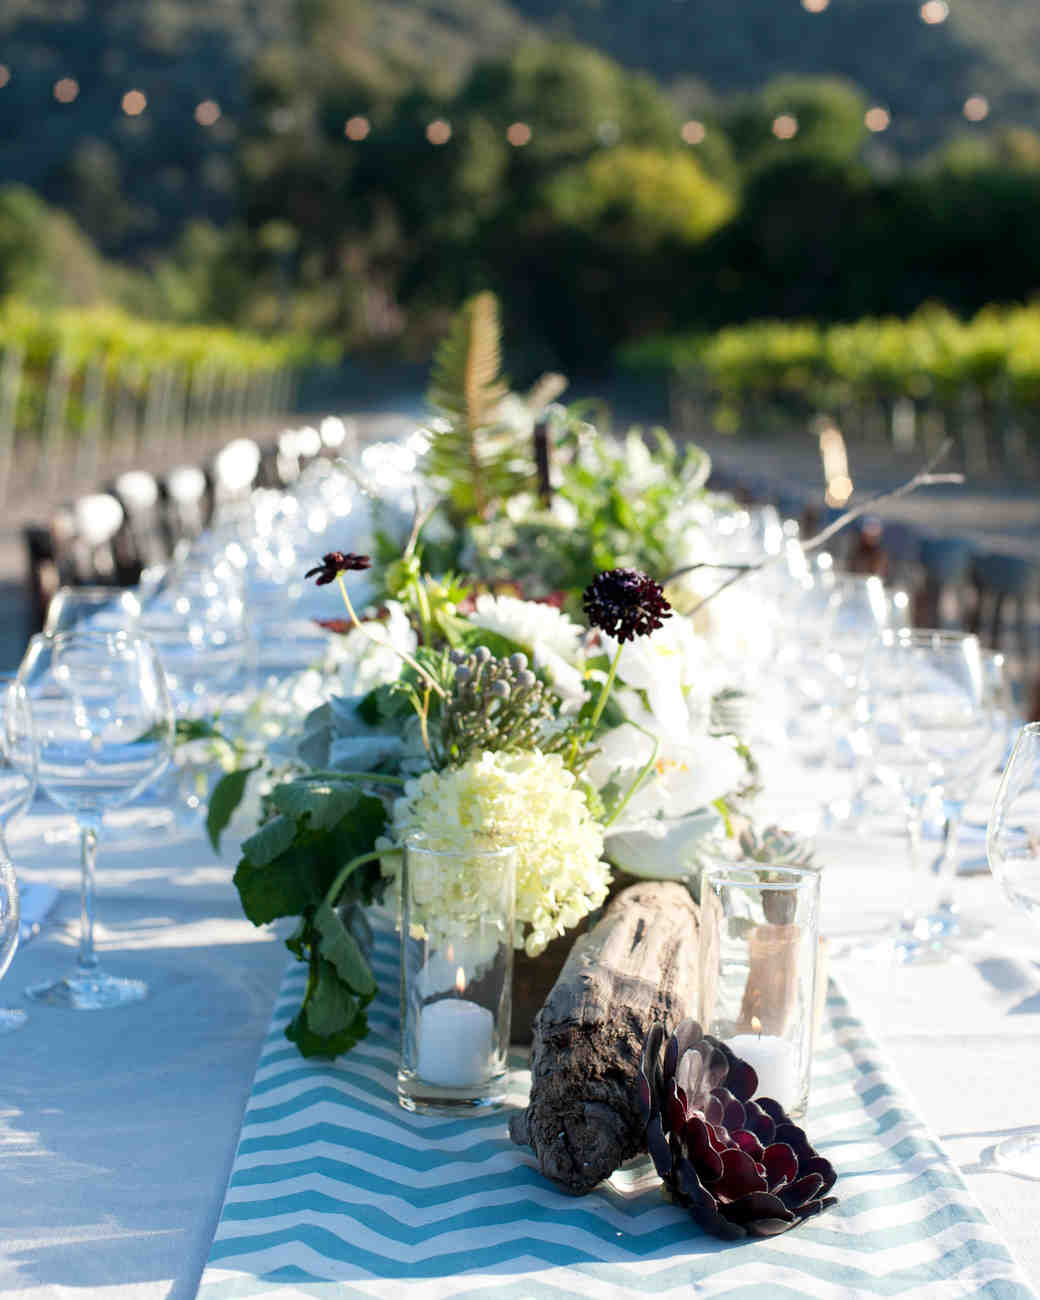 Flower Arrangements Ideas For Weddings: 66 Rustic Fall Wedding Centerpieces